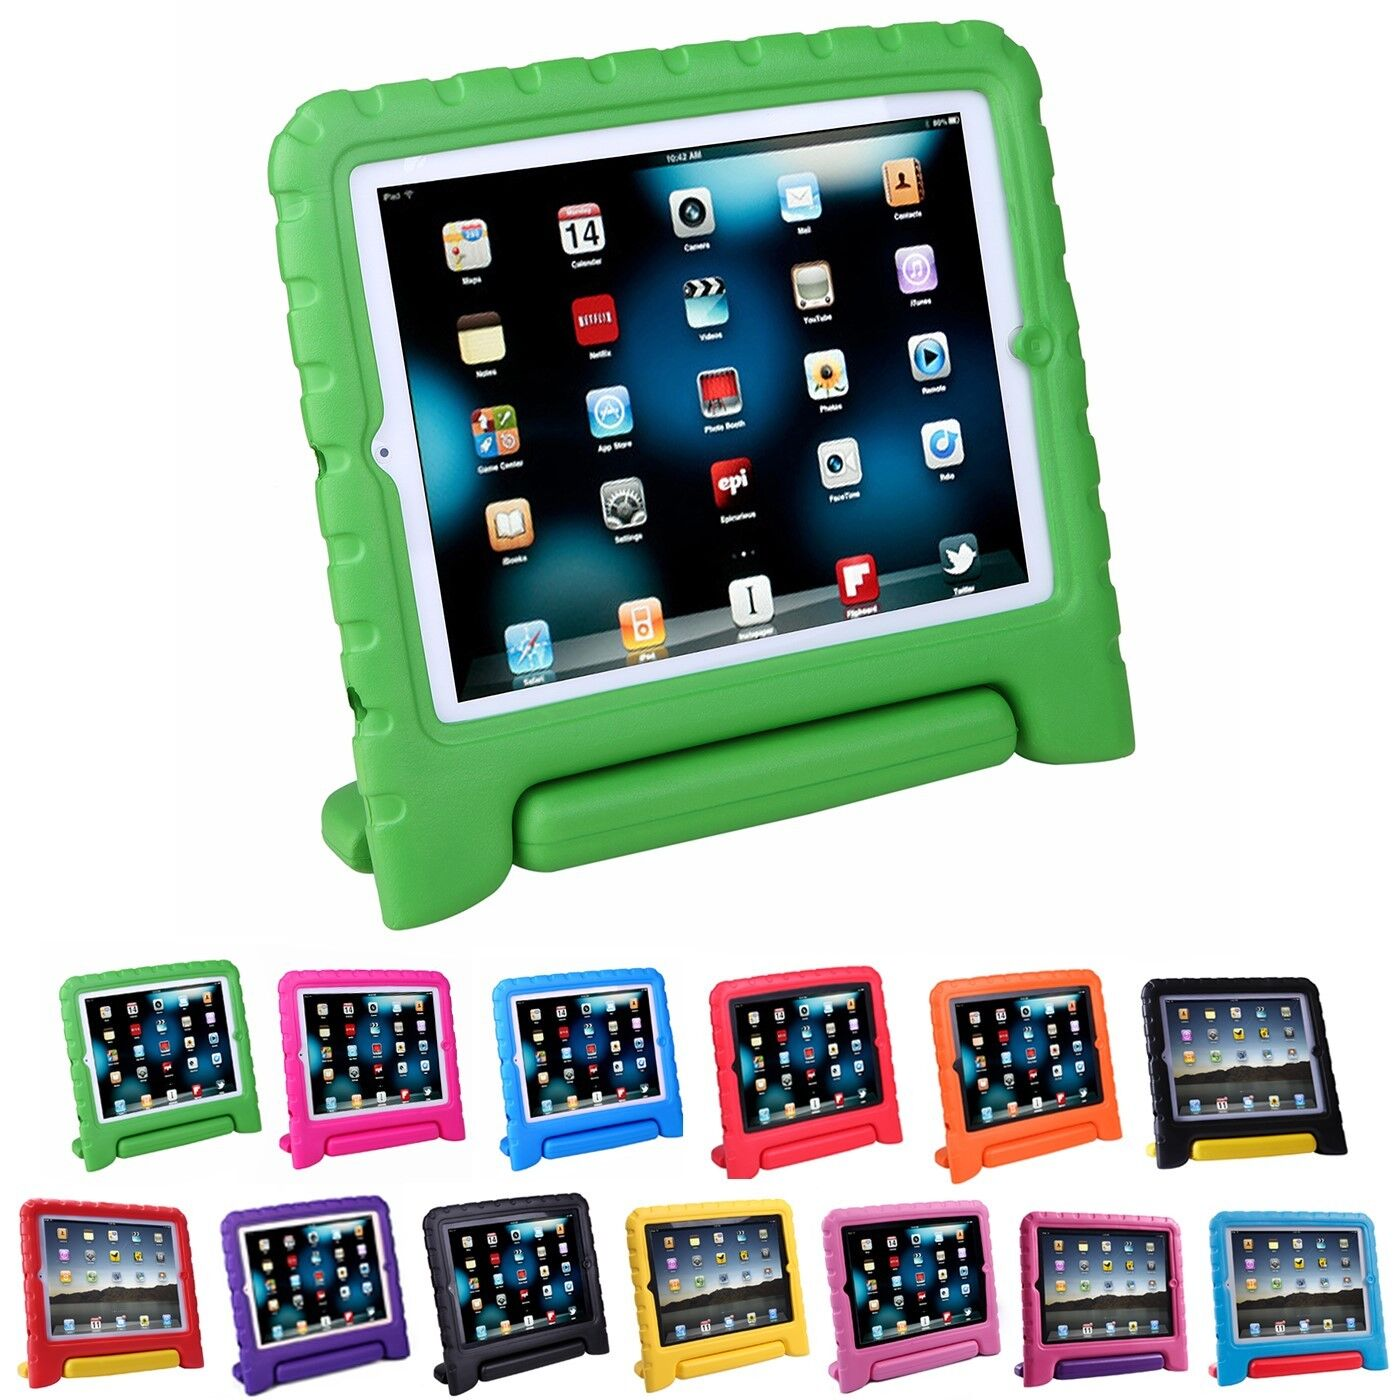 Купить HDE iPad 2nd, 3rd & 4th Gen - Shock Proof iPad Case for Kids Bumper Cover Handle Stand for Apple iPad 2/3/4